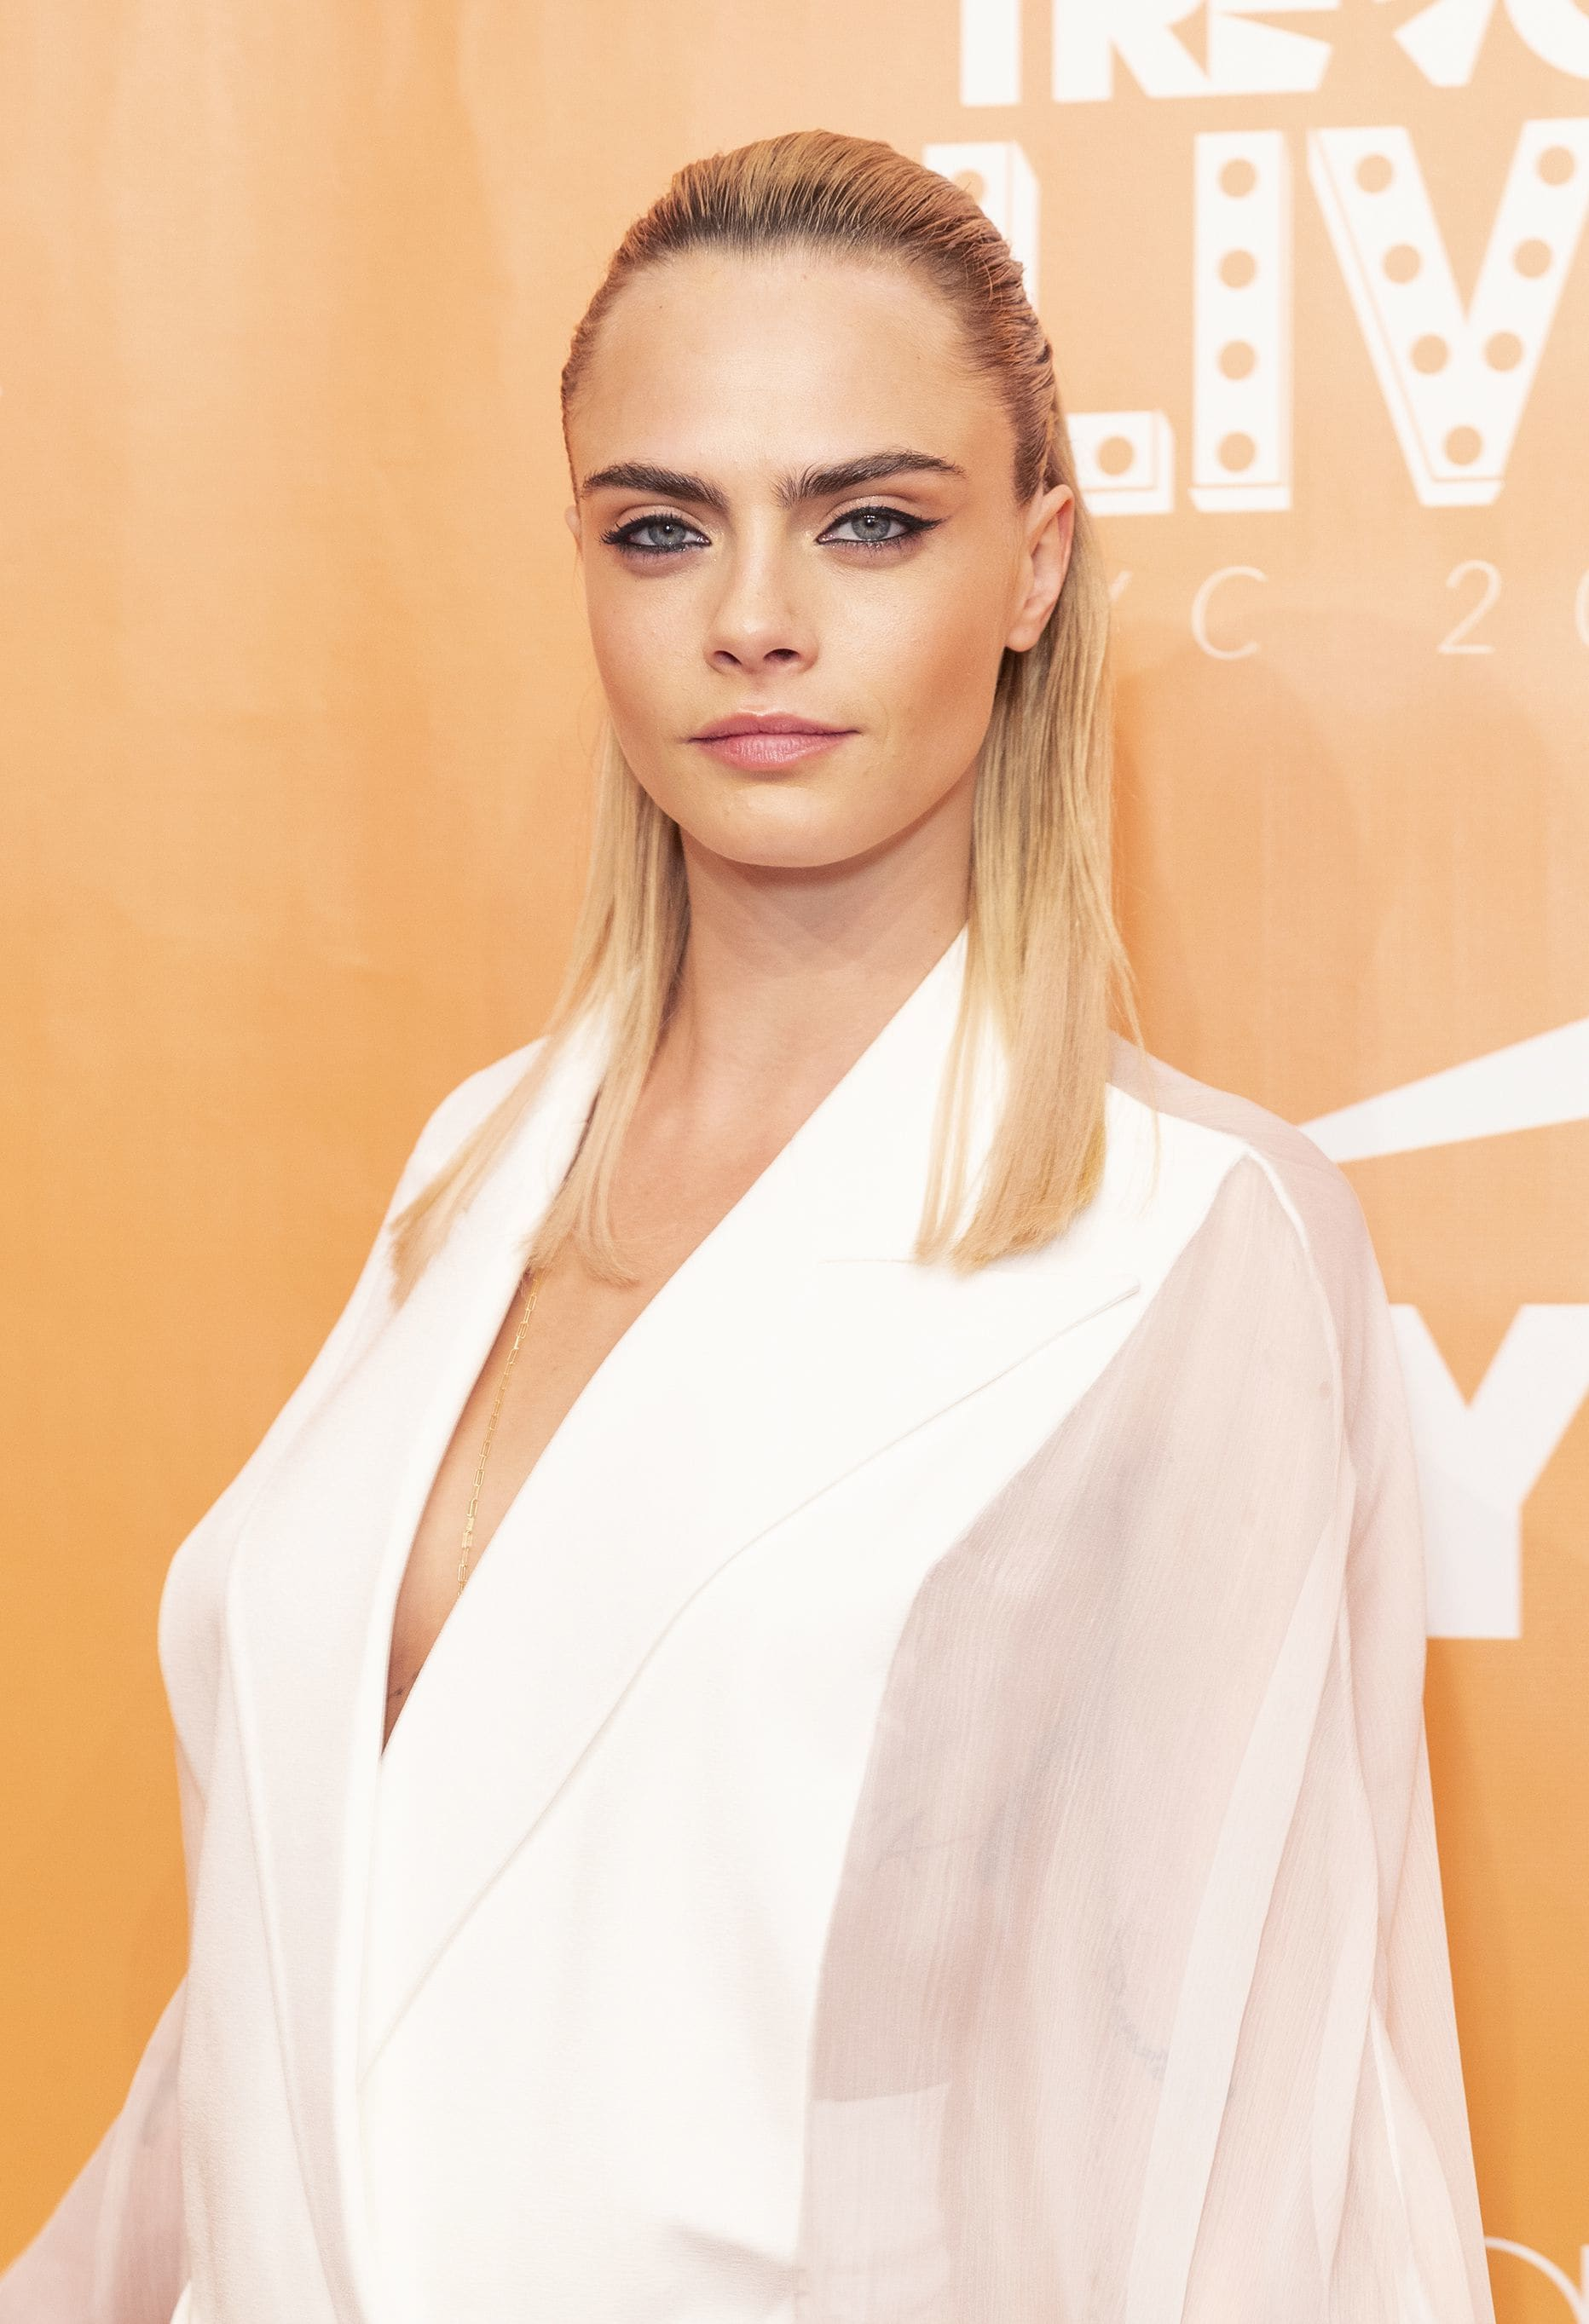 Cara Delevingne with straight blonde half-up, half-down